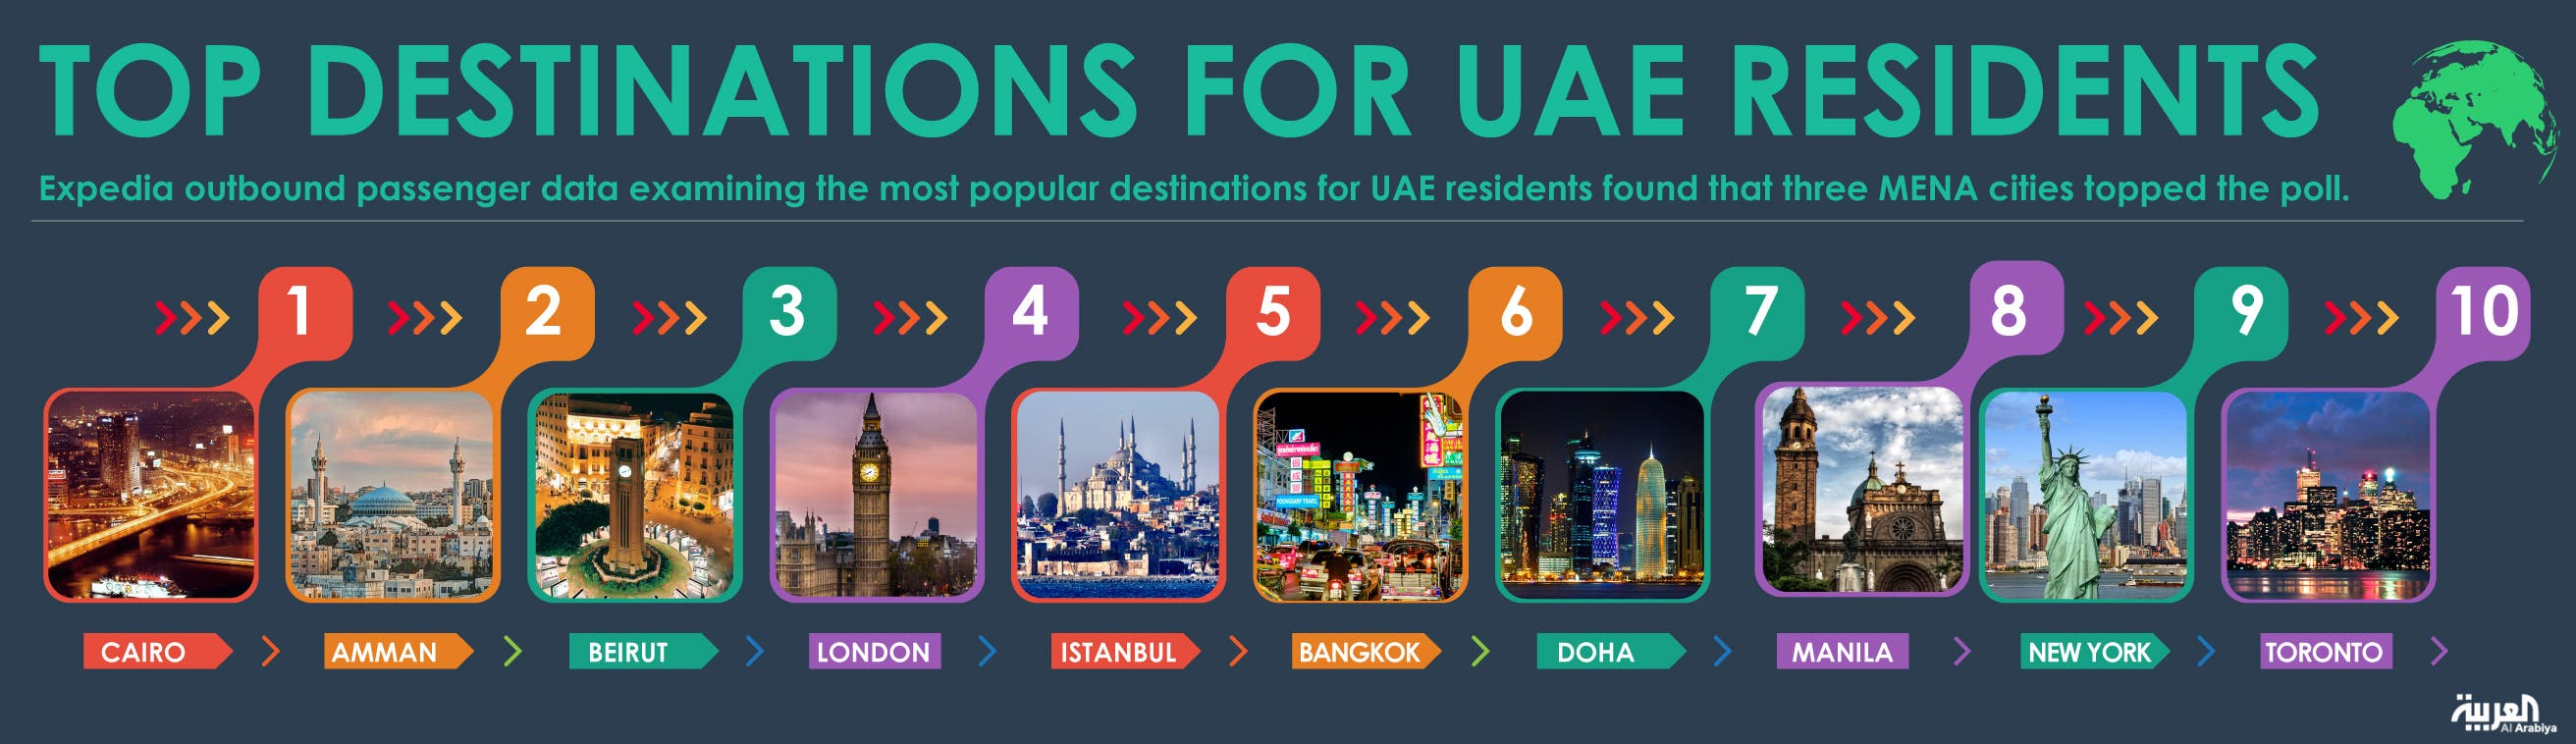 Infographic: Top destinations for UAE residents